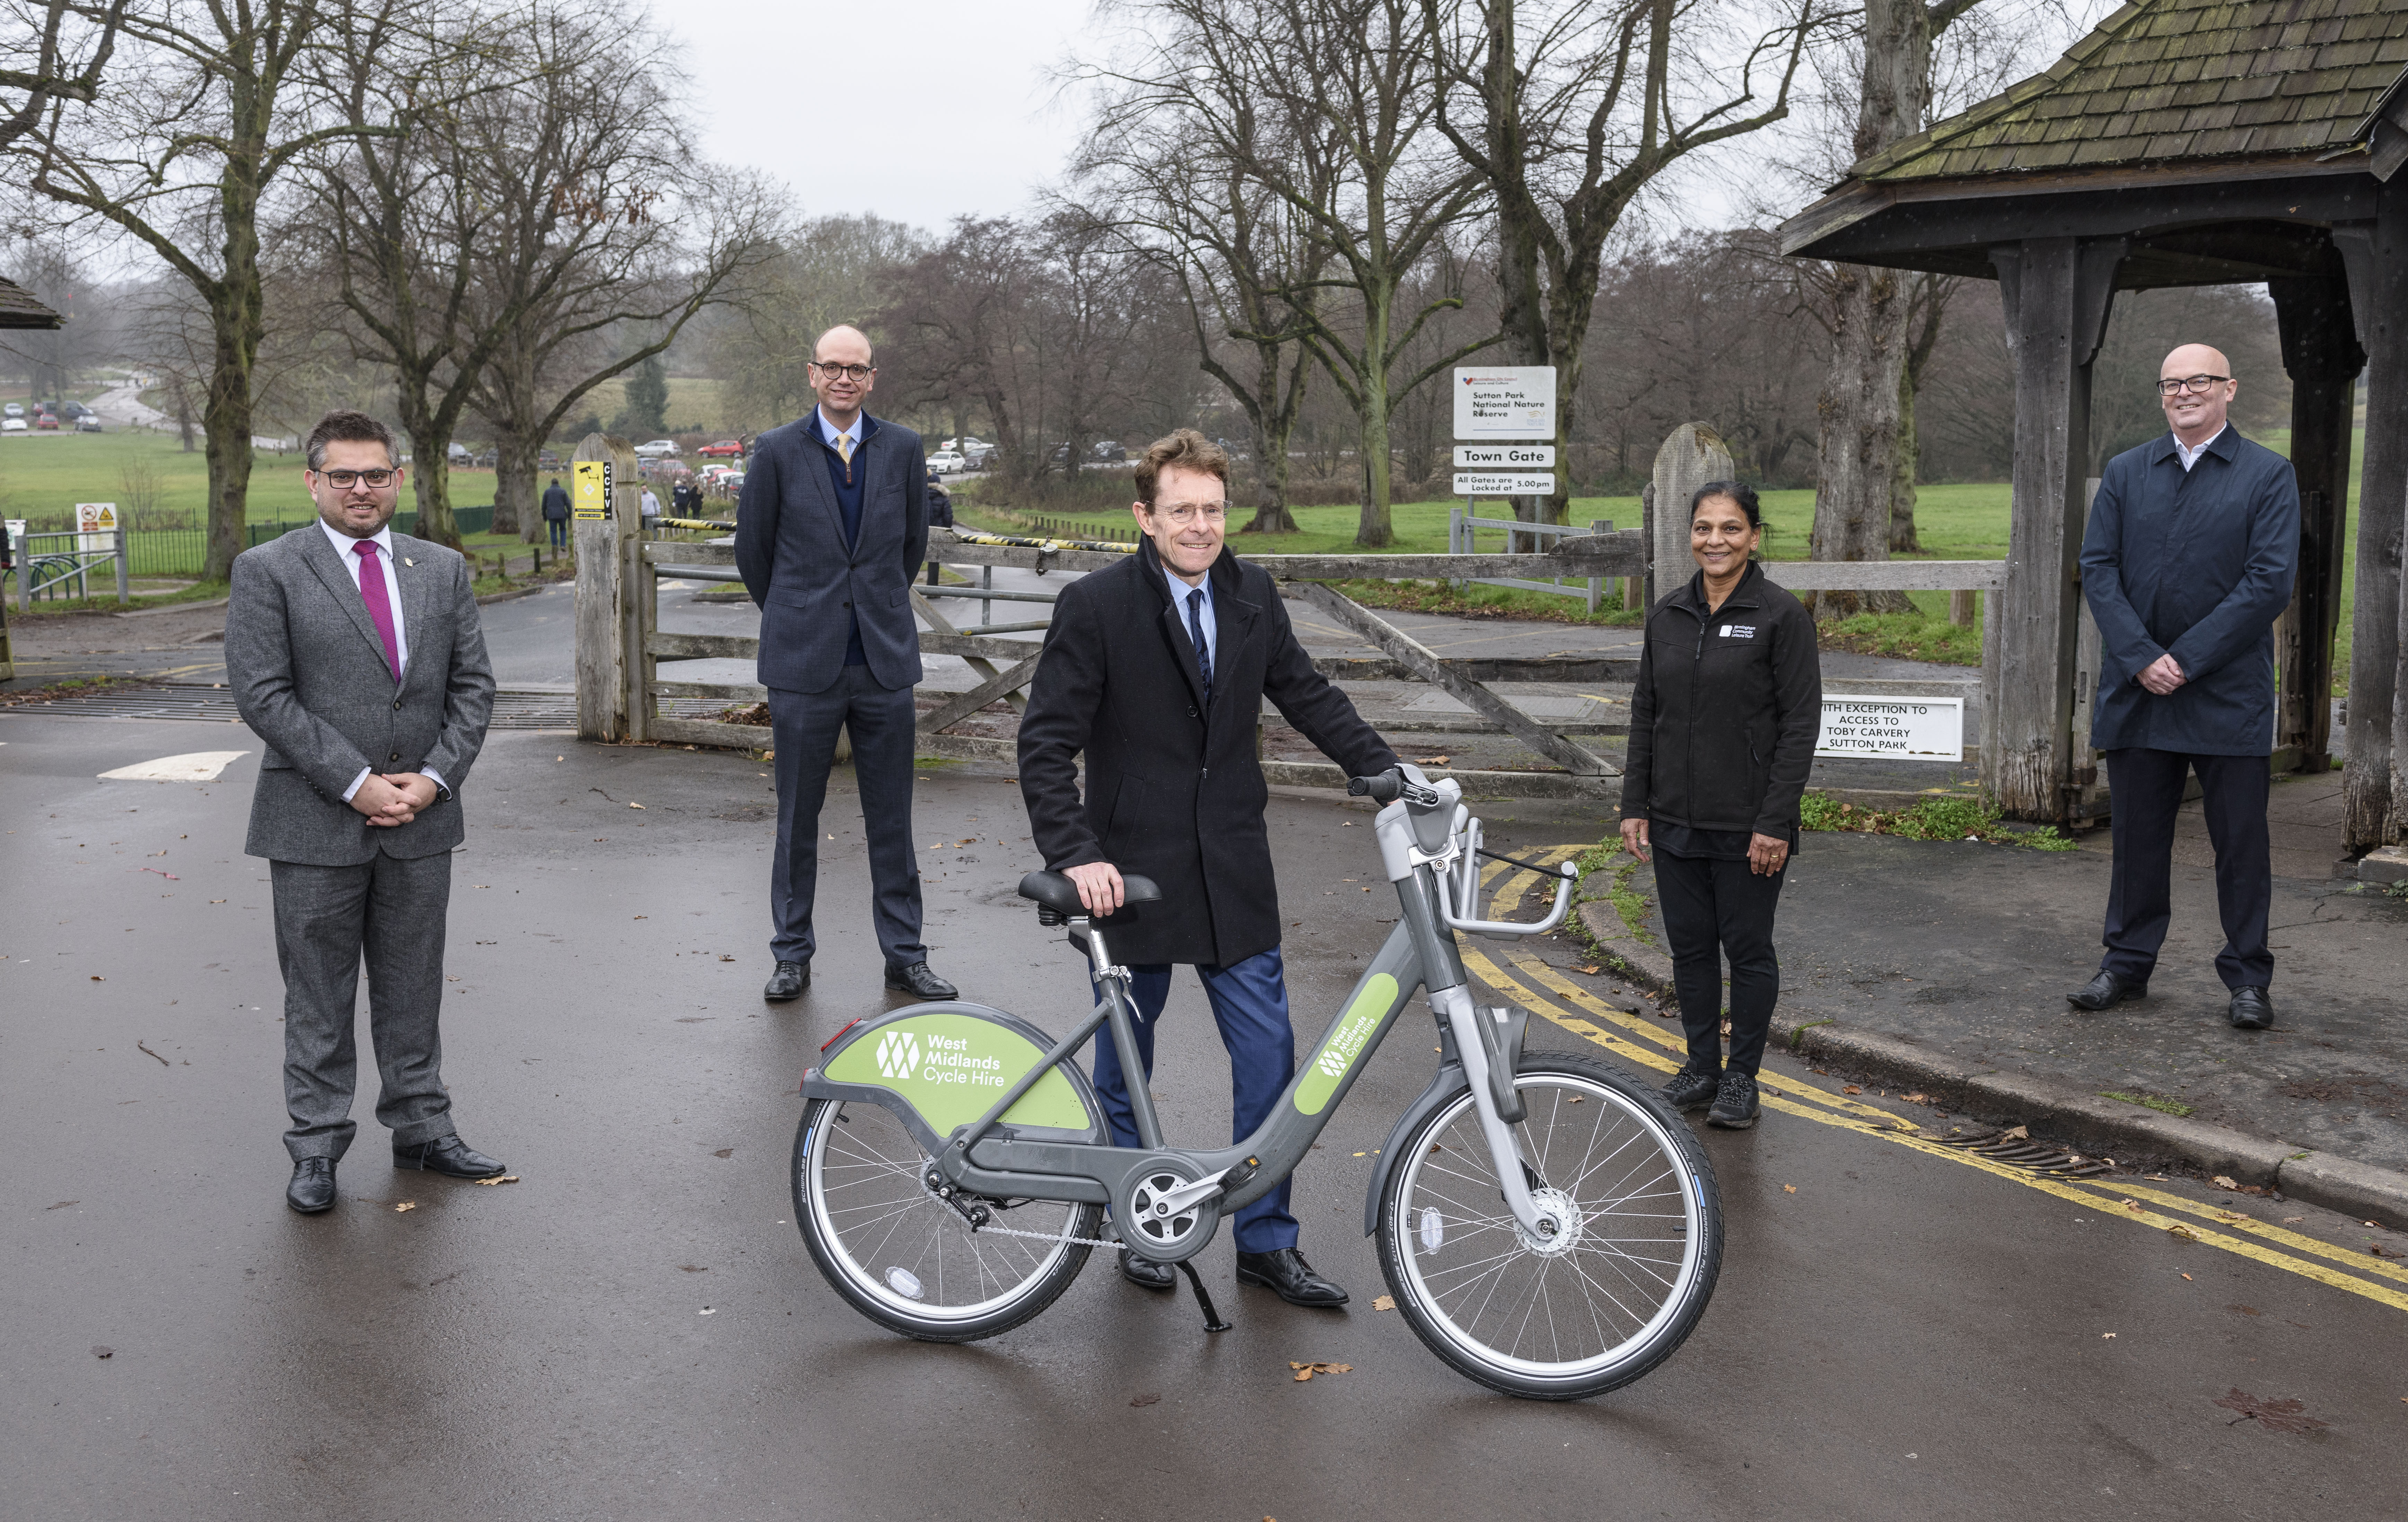 New West Midlands cycle hire scheme to start with pilot in Sutton Coldfield